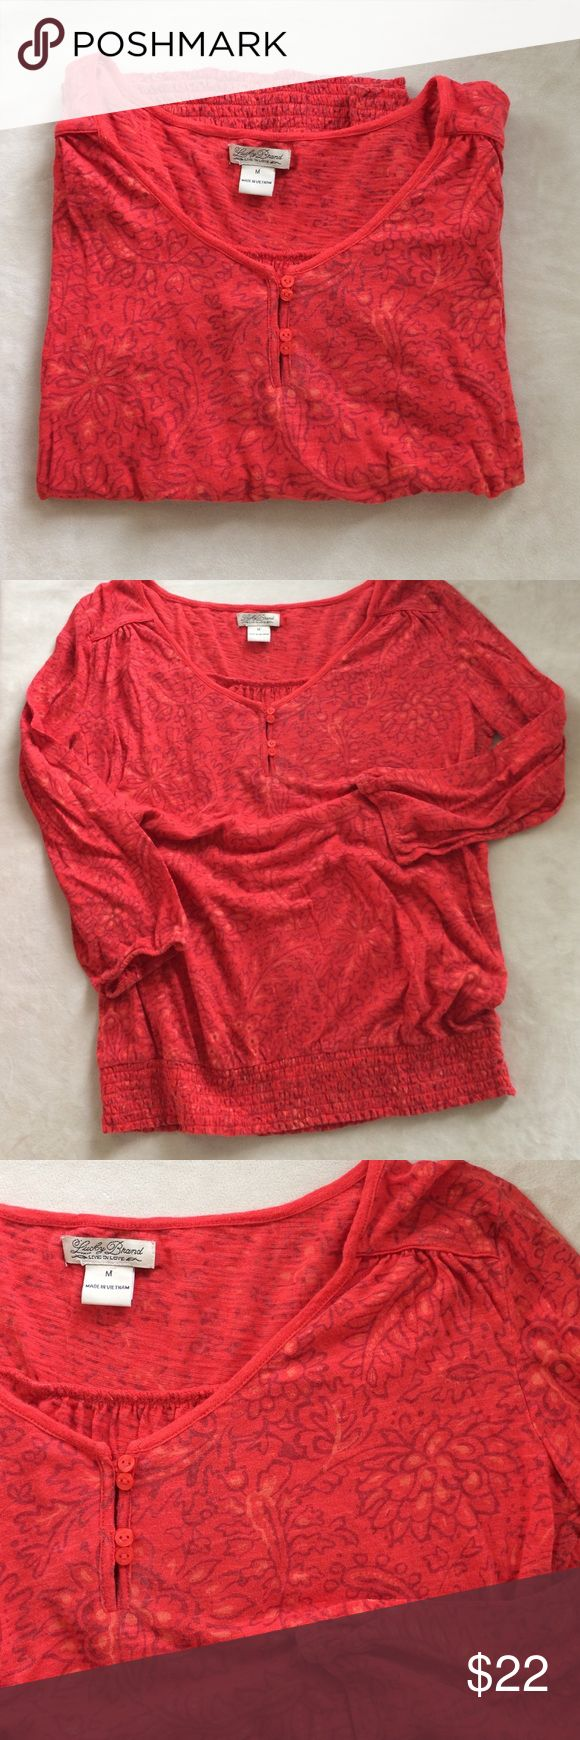 """Lucky Brand top Cute top in dark coral with floral design.  Soft cotton/modal blend.  Soft and comfortable. Great condition.  No snags, holes Etc.  20"""" across underarms.  24"""" from shoulder to hem.  3/4 sleeve. Lucky Brand Tops"""